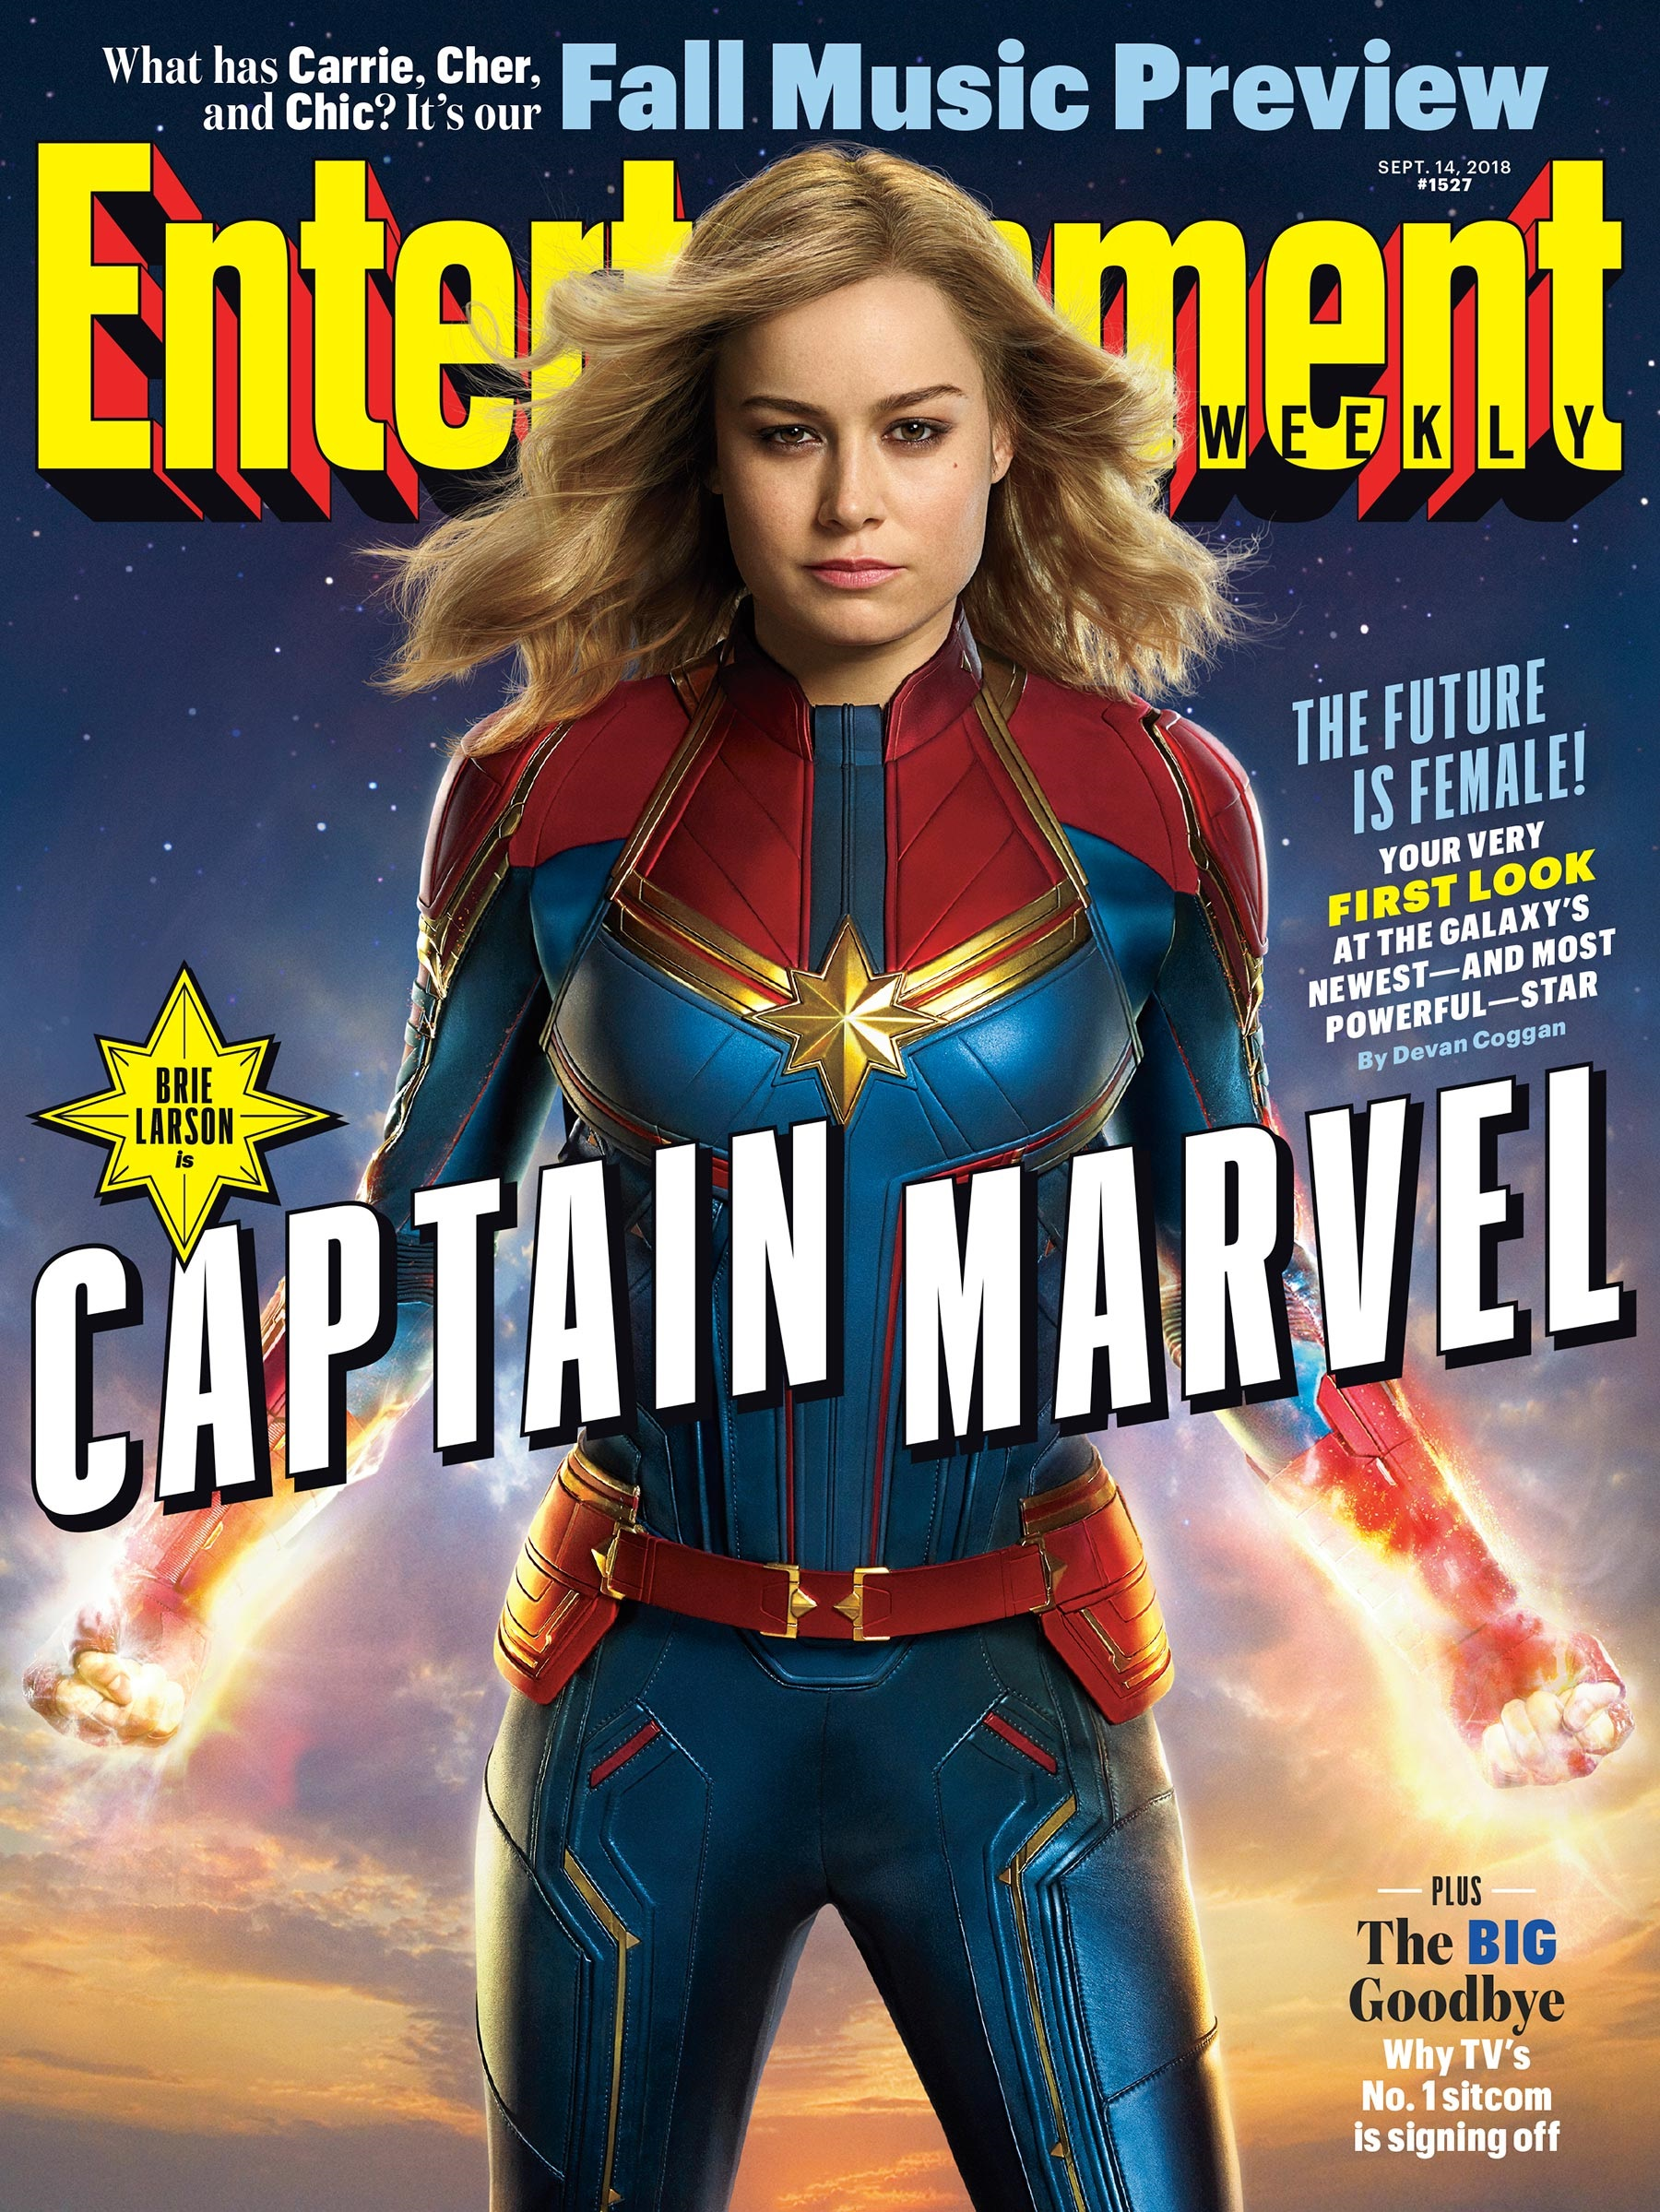 Magazine cover featuring Brie Larson as Captain Marvel